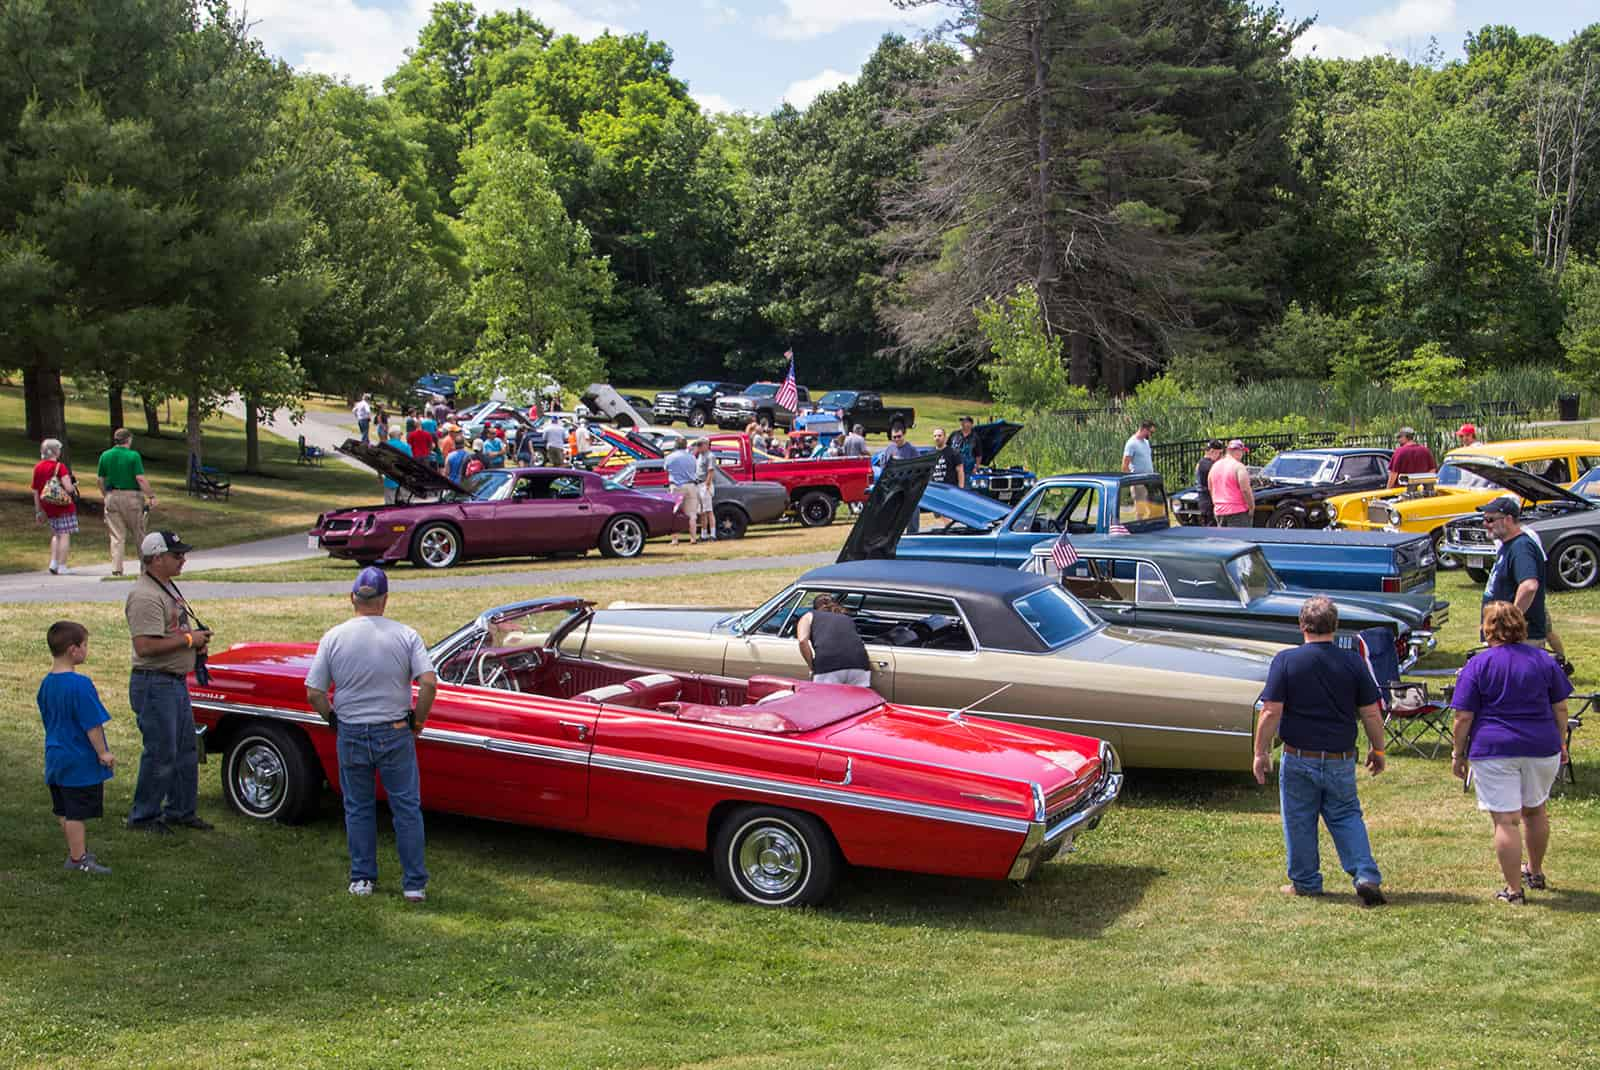 2016 Cars of Summer - Cars in Field Wide View